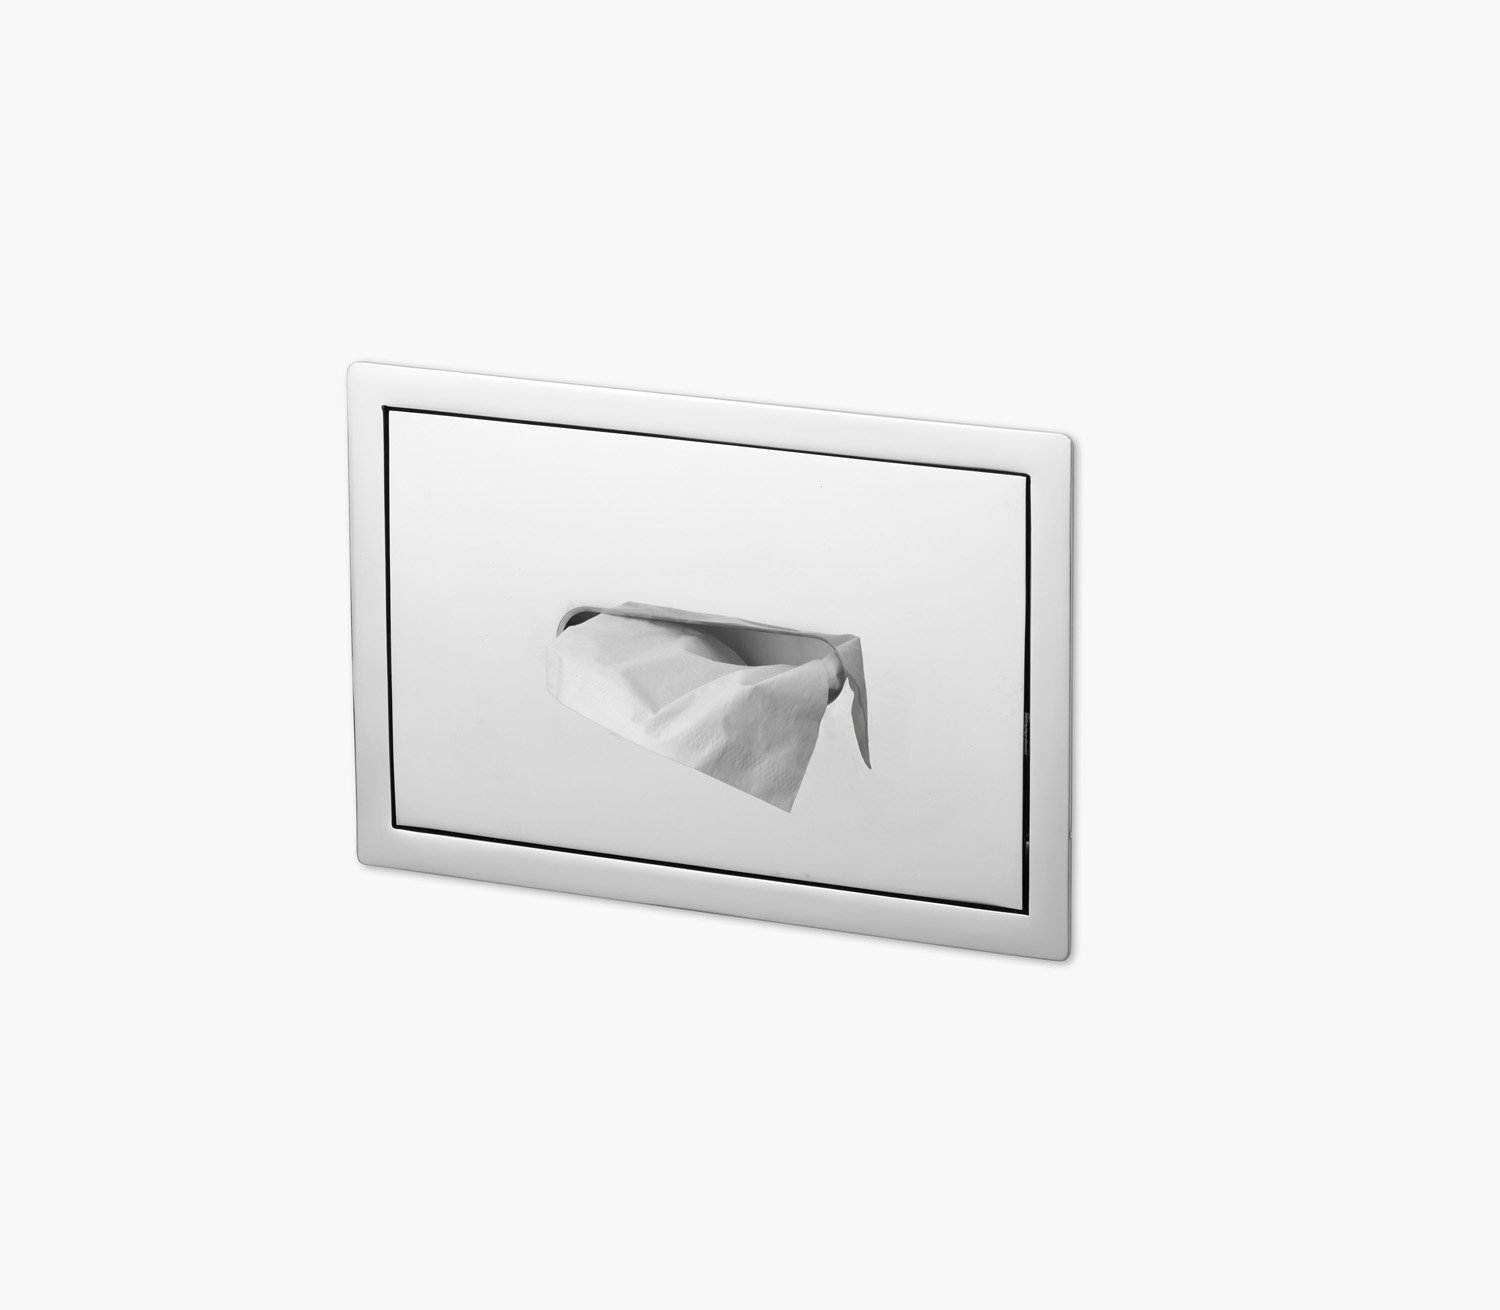 Wall Recessed Tissue Holder Product Image 1